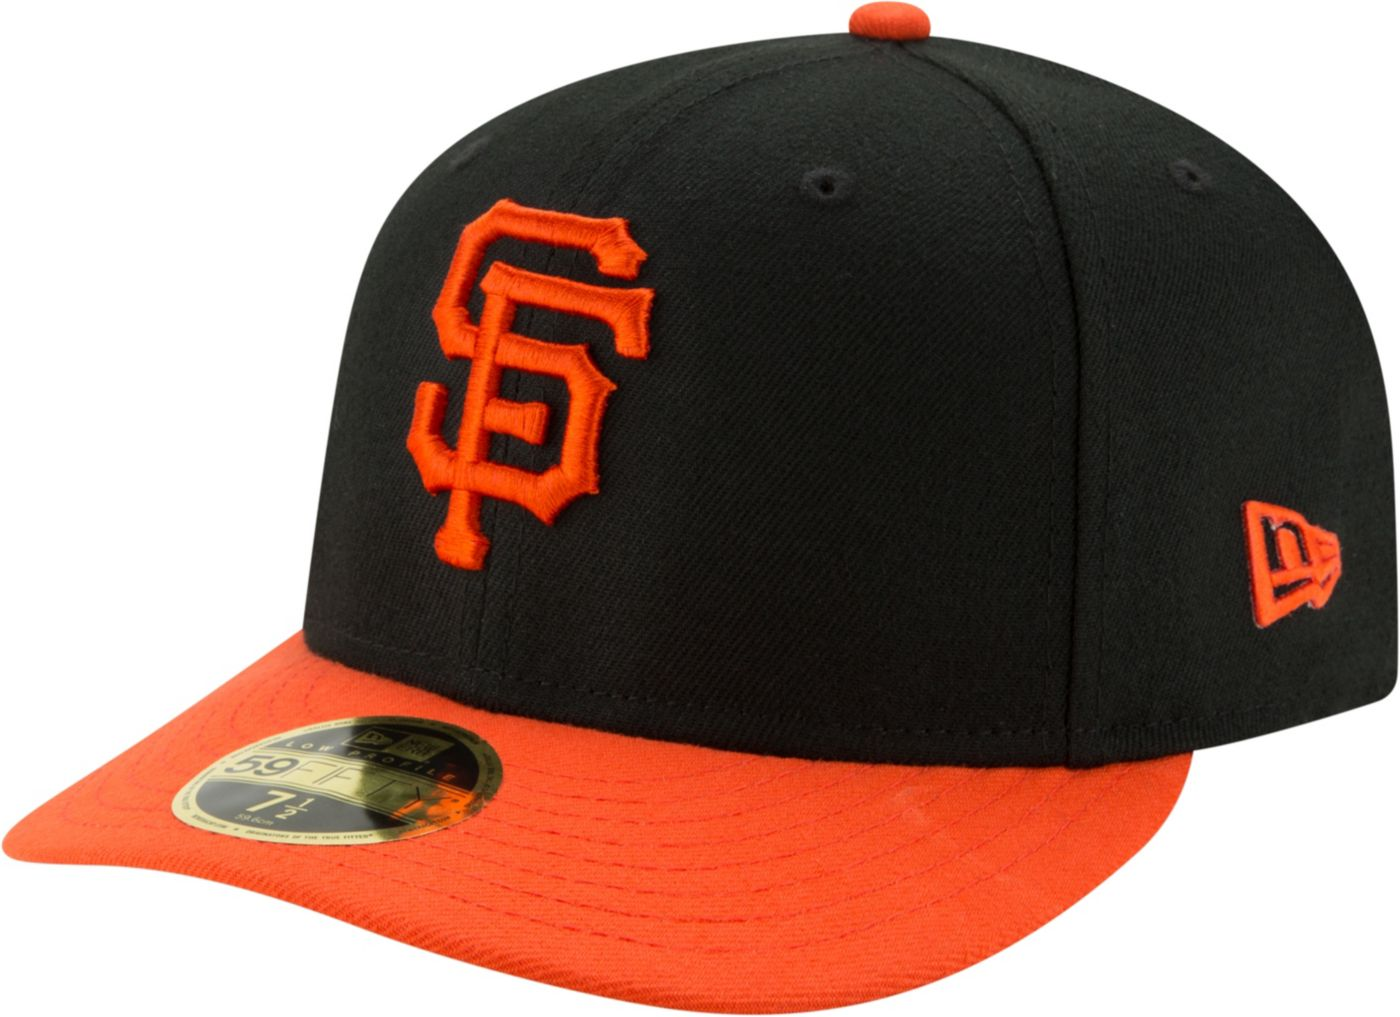 New Era Men's San Francisco Giants 59Fifty Alternate Black Low Crown Fitted Hat